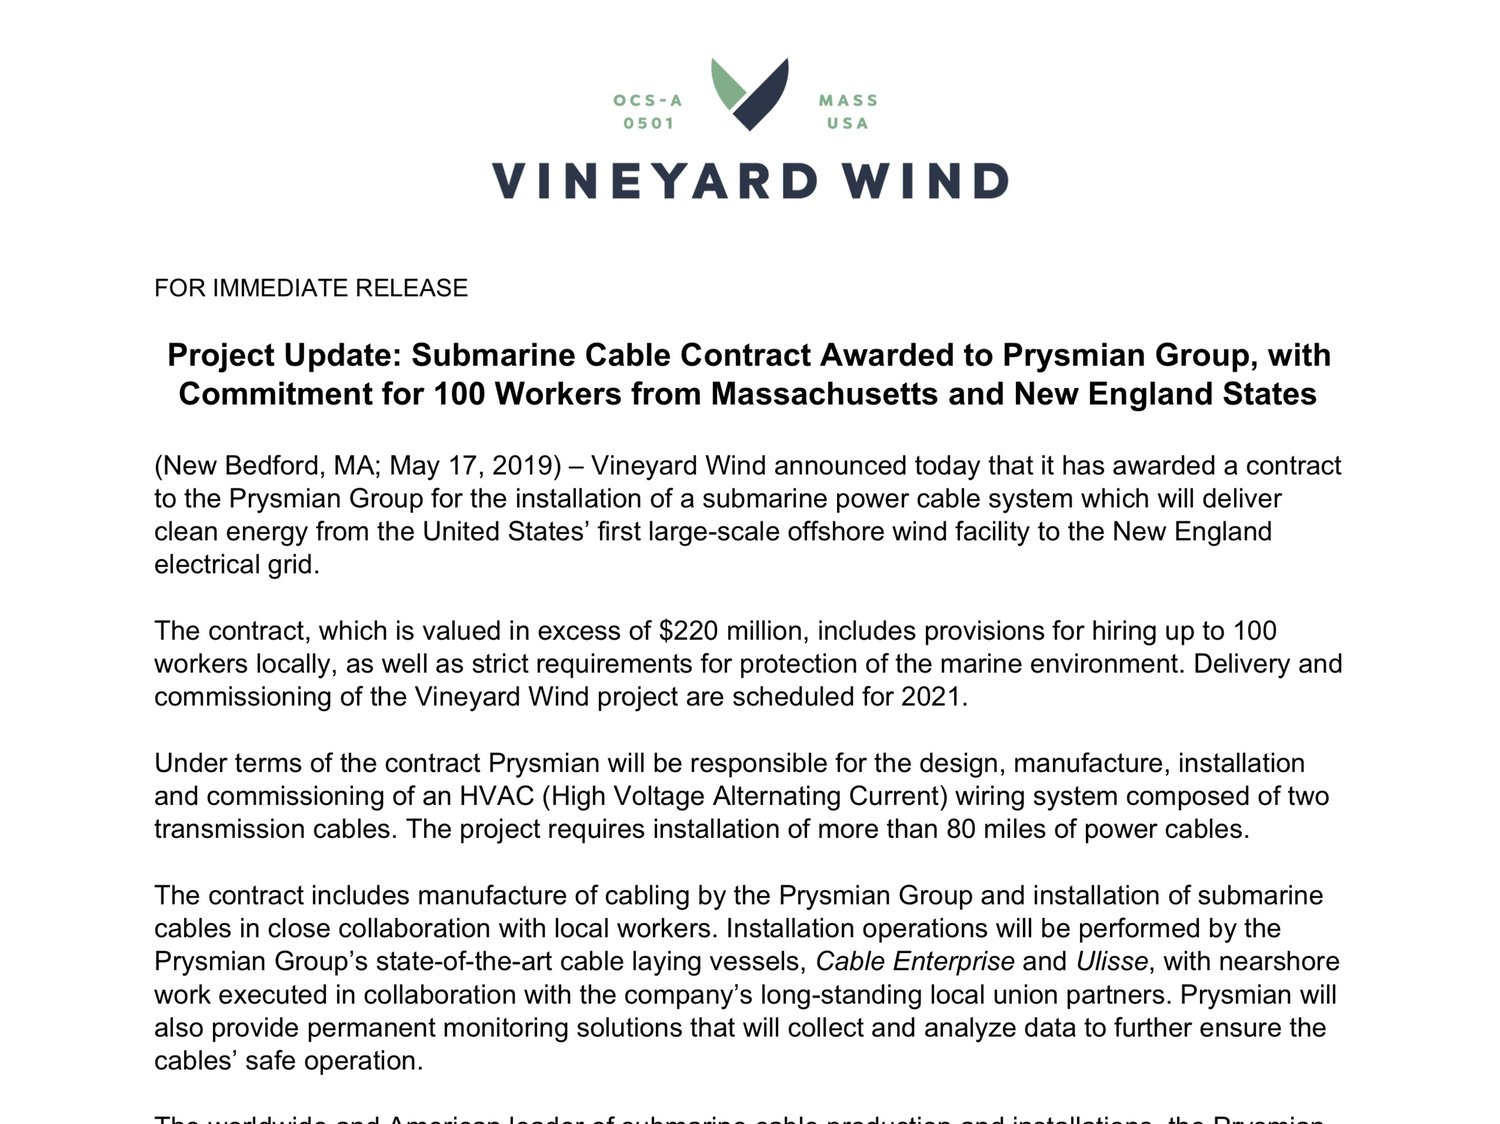 Project Update: Submarine Cable Contract Awarded to Prysmian Group